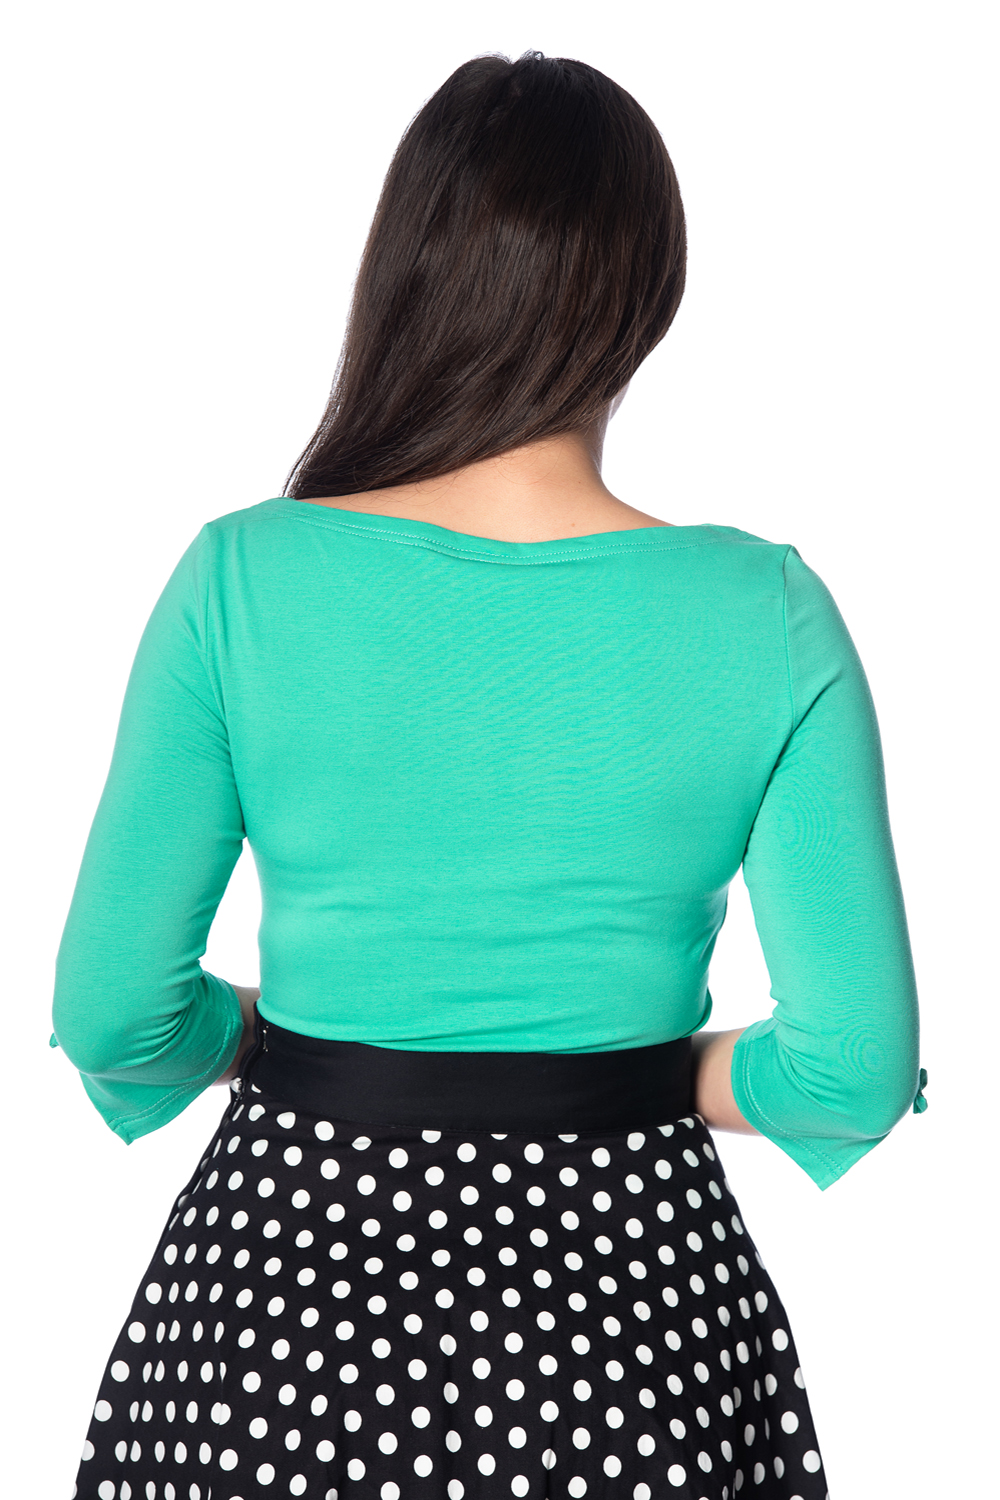 Banned Retro 50s Oonagh Emerald Top